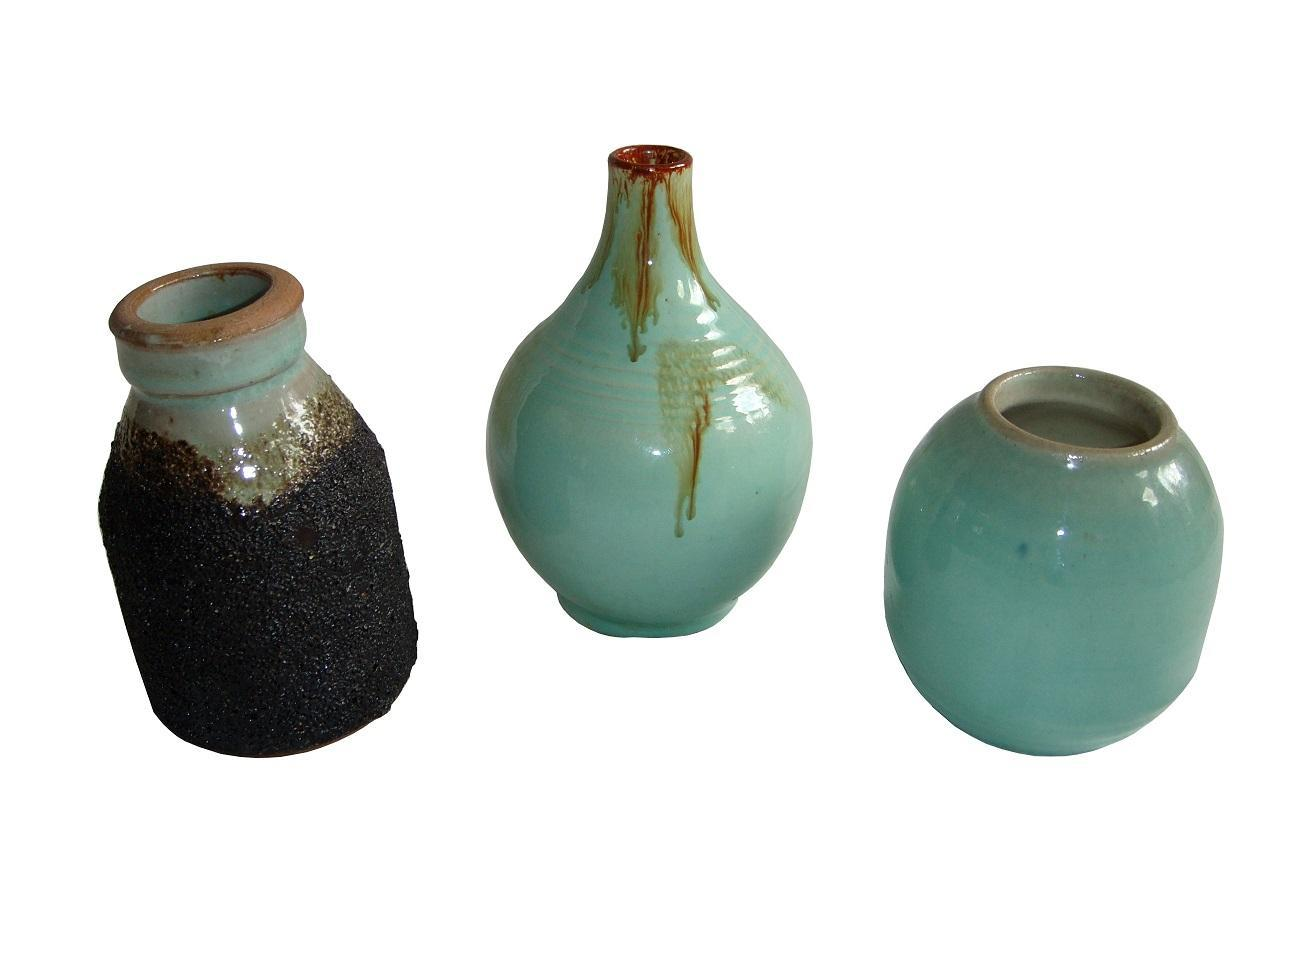 Japanese Studio Pottery Celadon Glaze Ceramic Vase Bottle